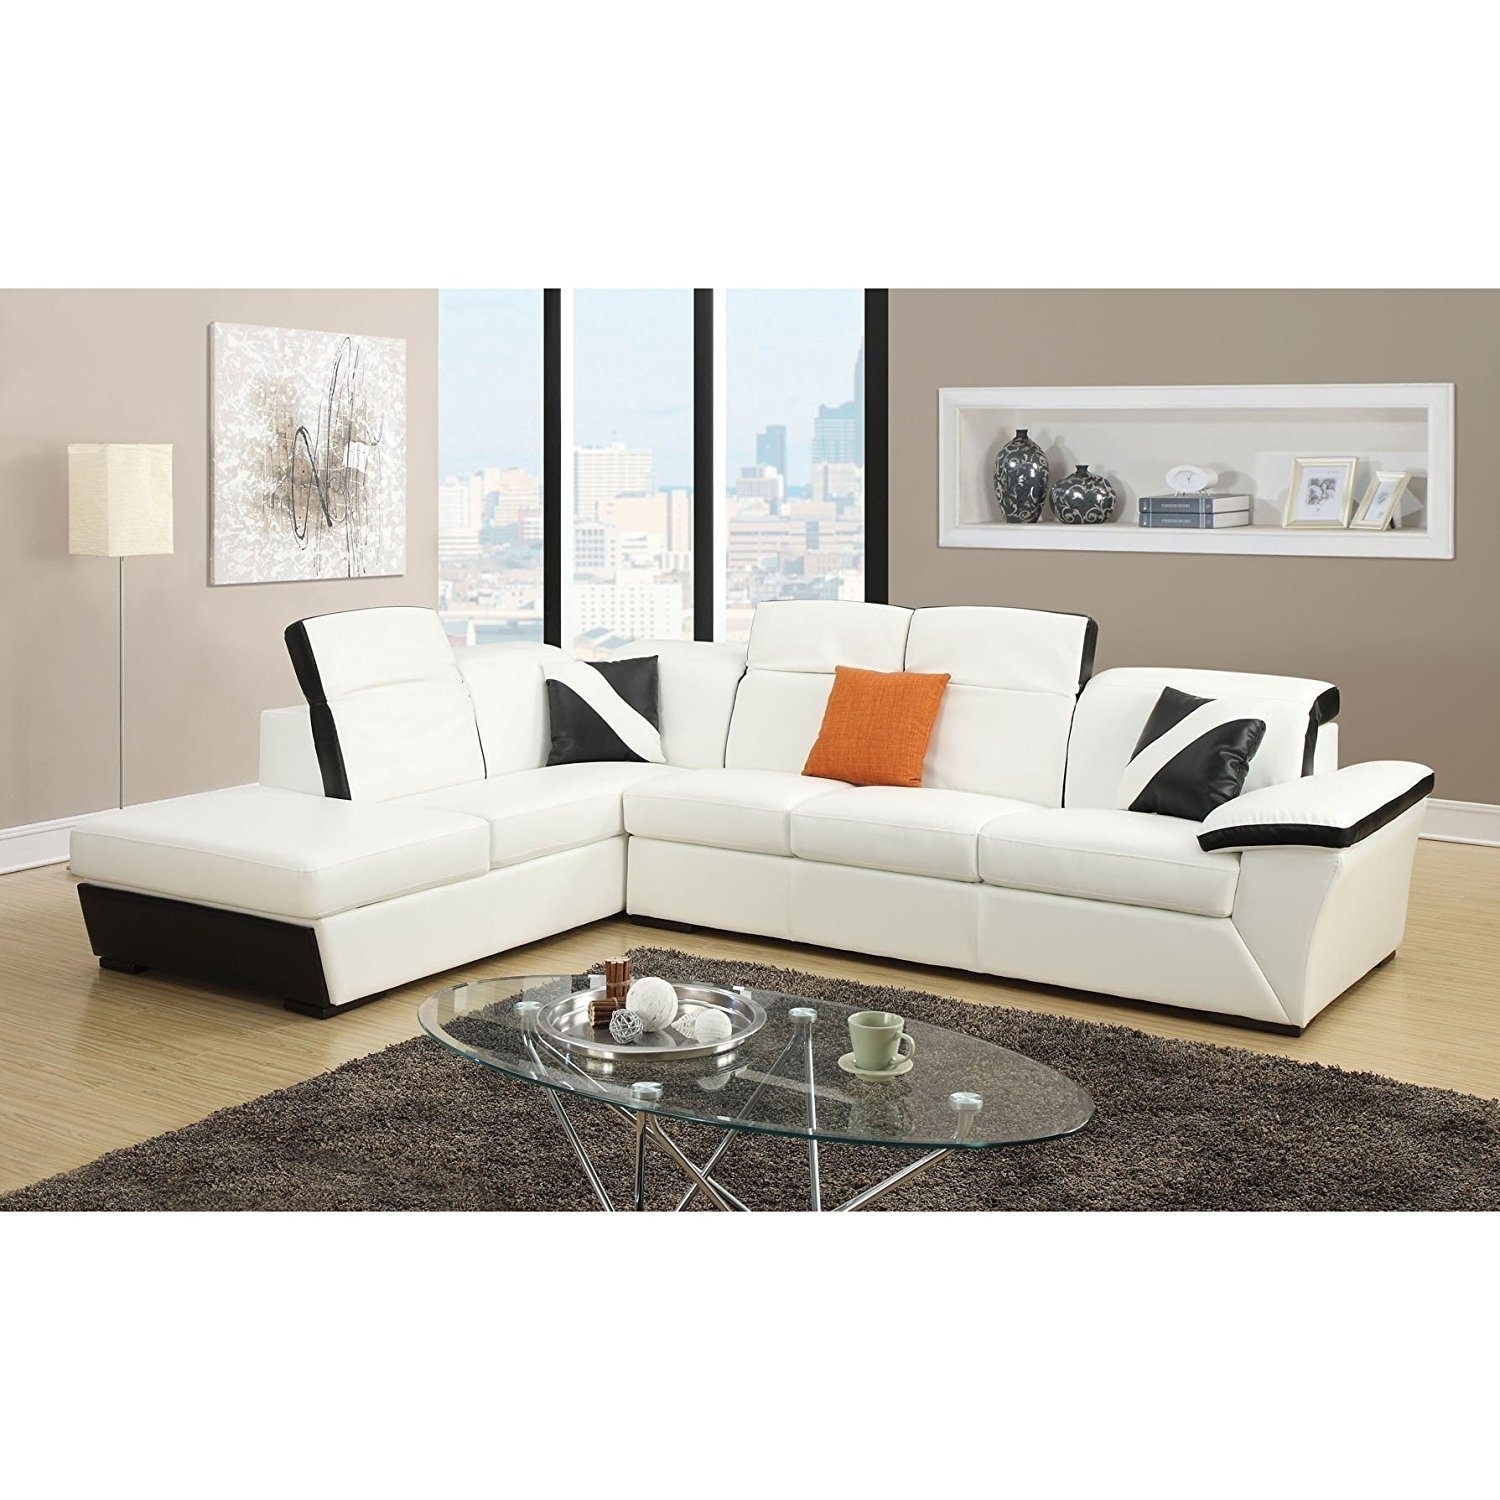 Orren Ellis Keyana Sofa Sectional | Wayfair for Collins Sofa Sectionals With Reversible Chaise